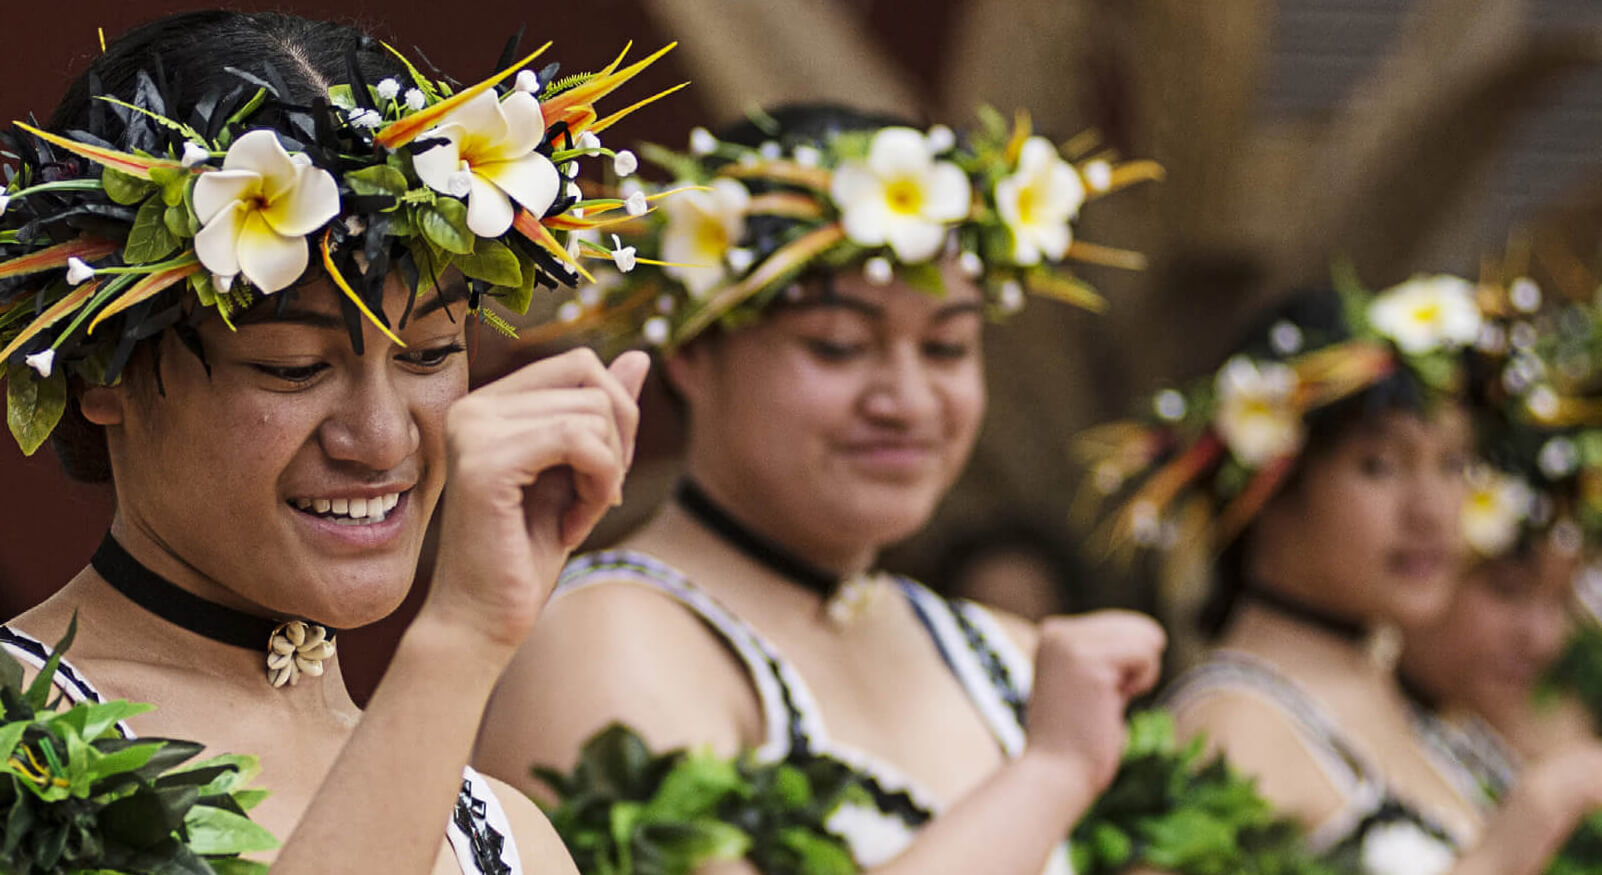 Nukulaelae Tuvalu Group performs at Pacific Arts Fono 2017. Photography by Raymond Sagapolutele.